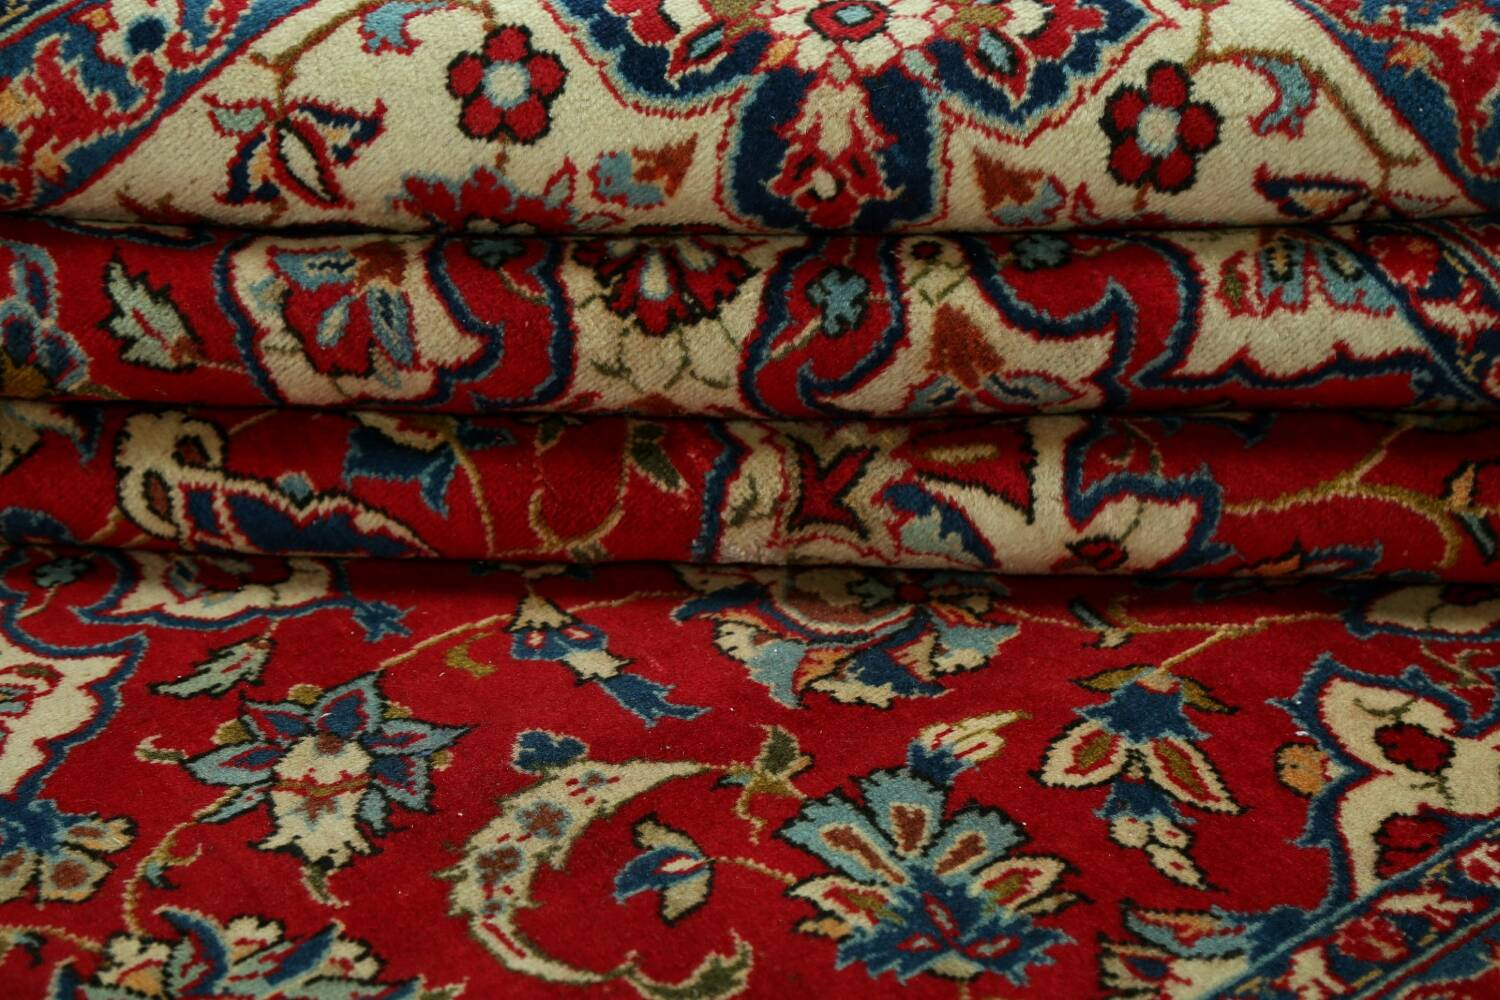 Vintage Floral Red Najafabad Persian Area Rug 8x12 image 18